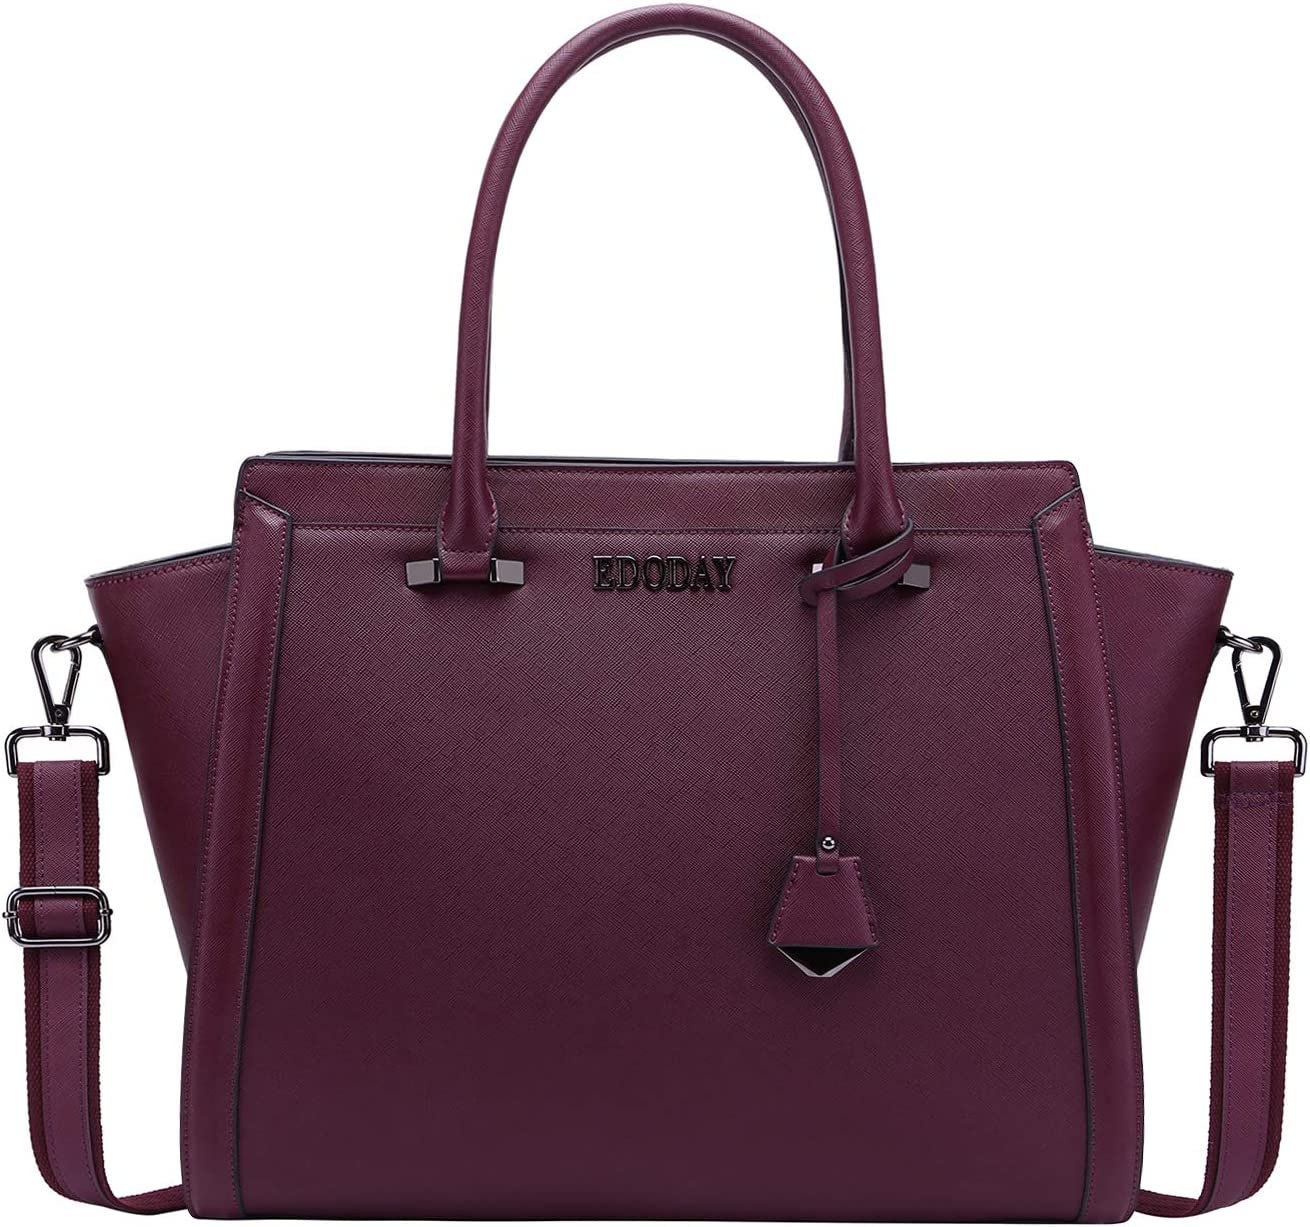 17 Inch Laptop Bag,Multi-Pocket Large Office Handbags Briefcase Briefcase Work Tote Bag,L0016 Darkpurple 17 Inch